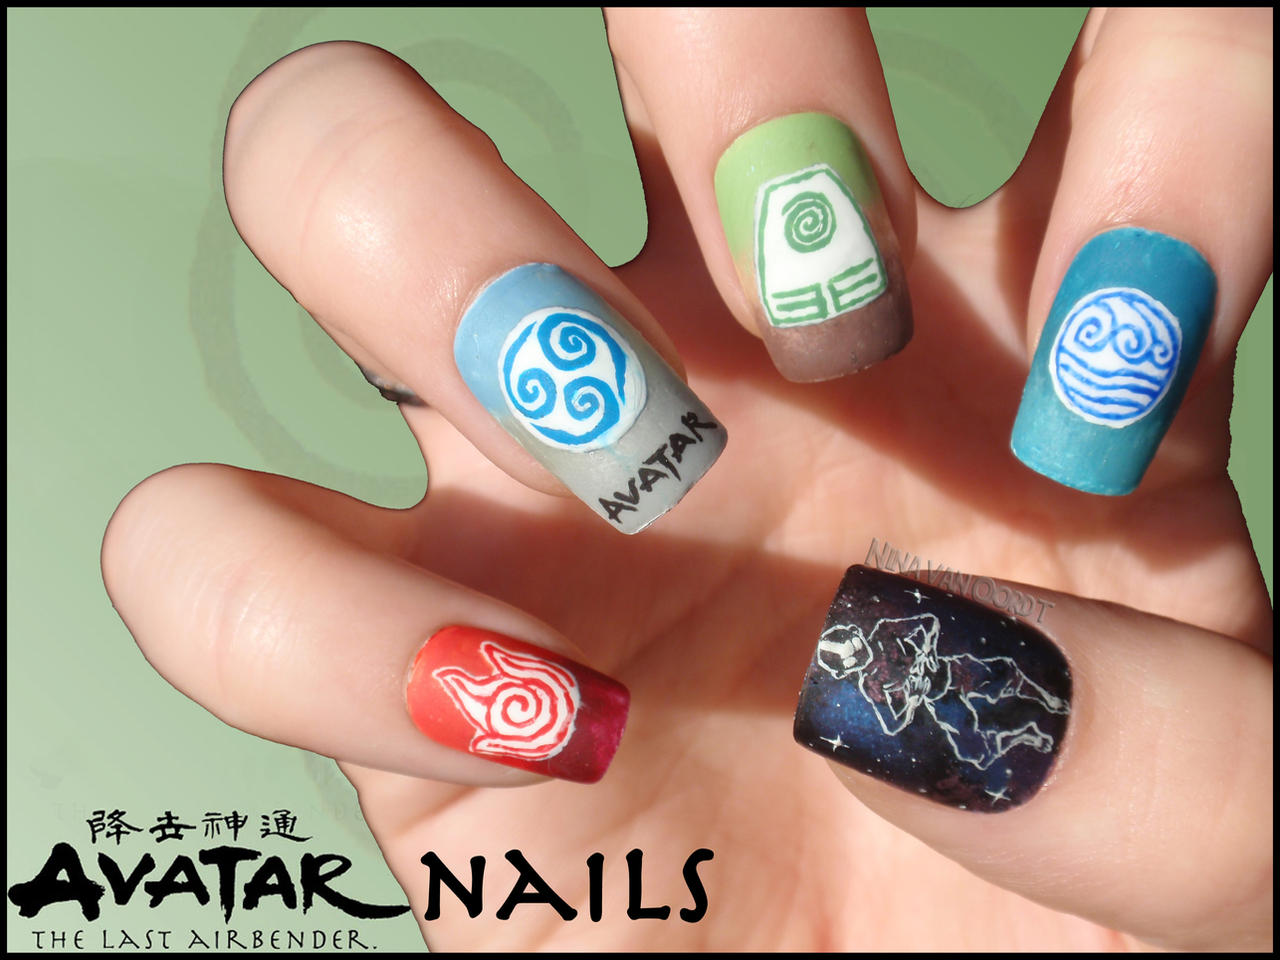 Anime Nails on Geek-Nails - DeviantArt